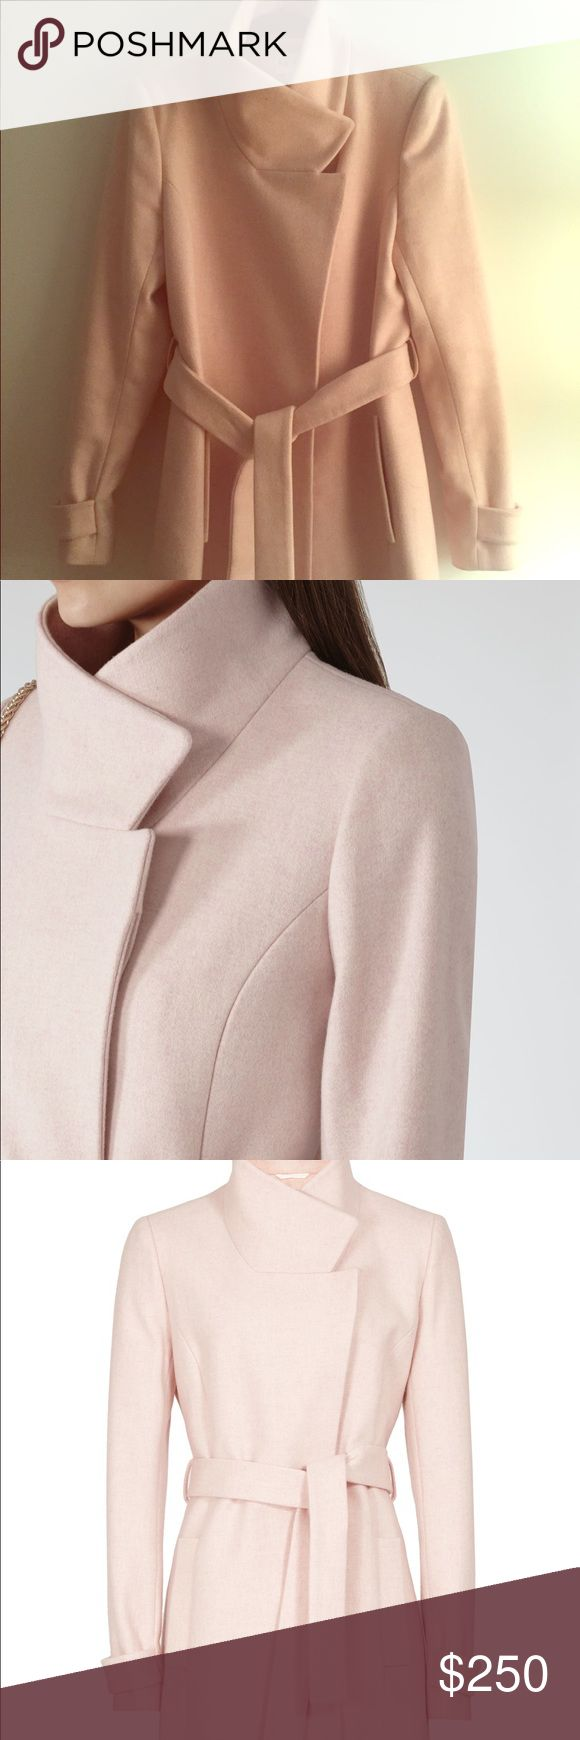 Reiss Coat Mid Lengthen US 8 75% Wool 20% Polyamide, 5% Cashmere  Brand new with original tag.  Original price $475 Reiss Jackets & Coats